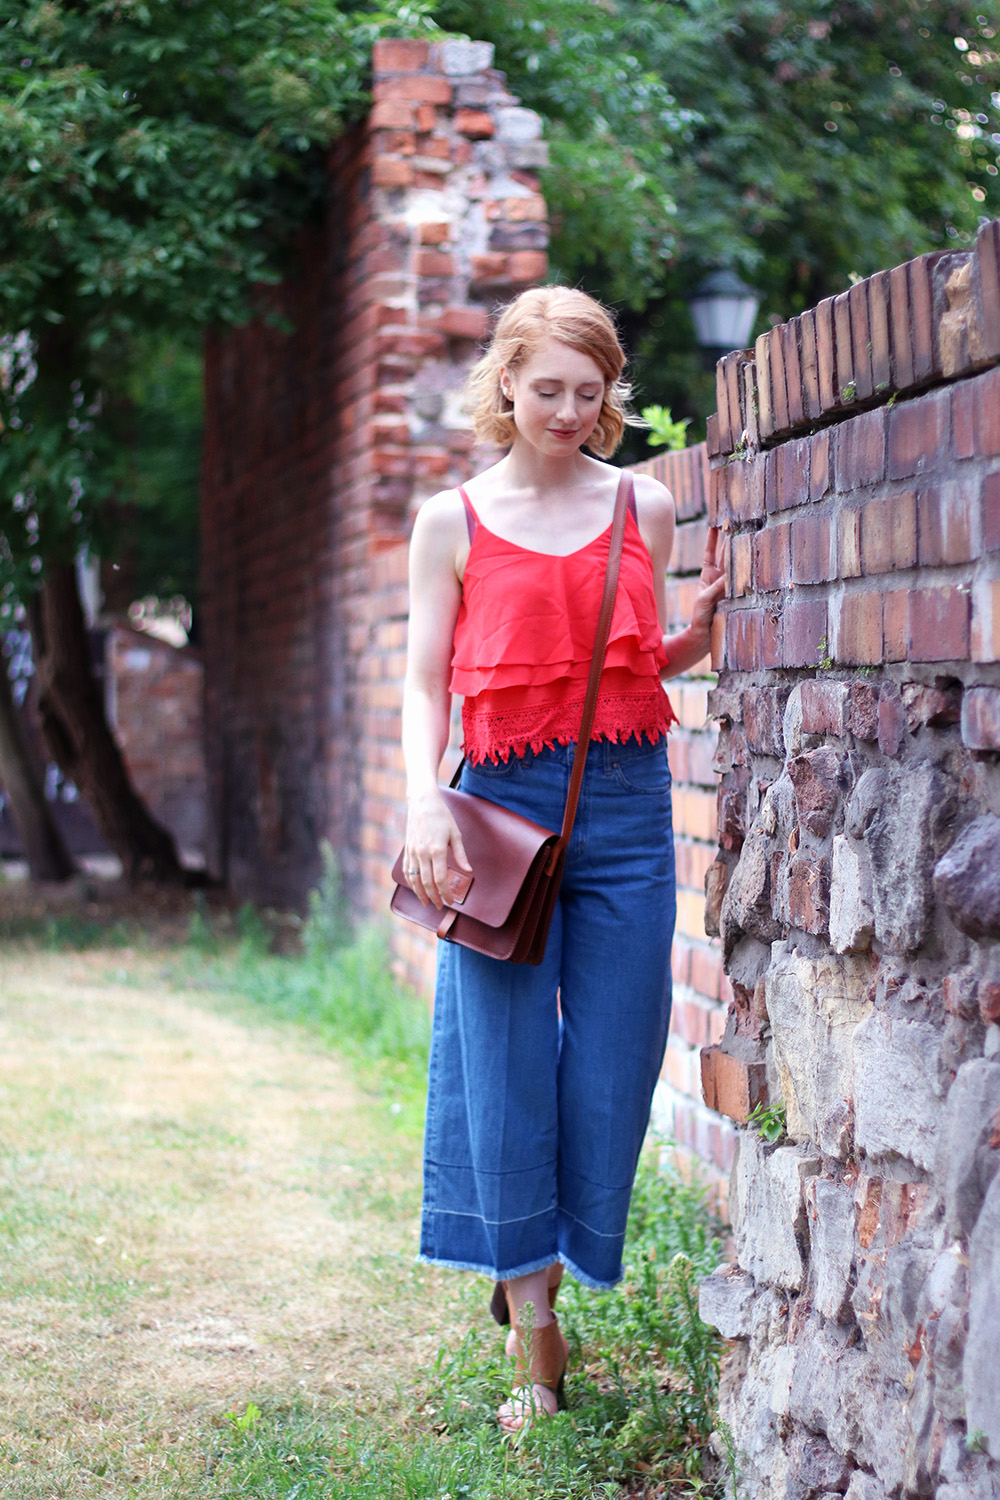 Sommerlook, Jeans Culotte, Hose, Sommer Look, Outfit, Tipps, Streetstyle, Modetipps, Finde deinen Stil, Influencer, Deutschland, Berlin, Mode Blog, Modeblog, Advance Your Style, advanceyourstyle